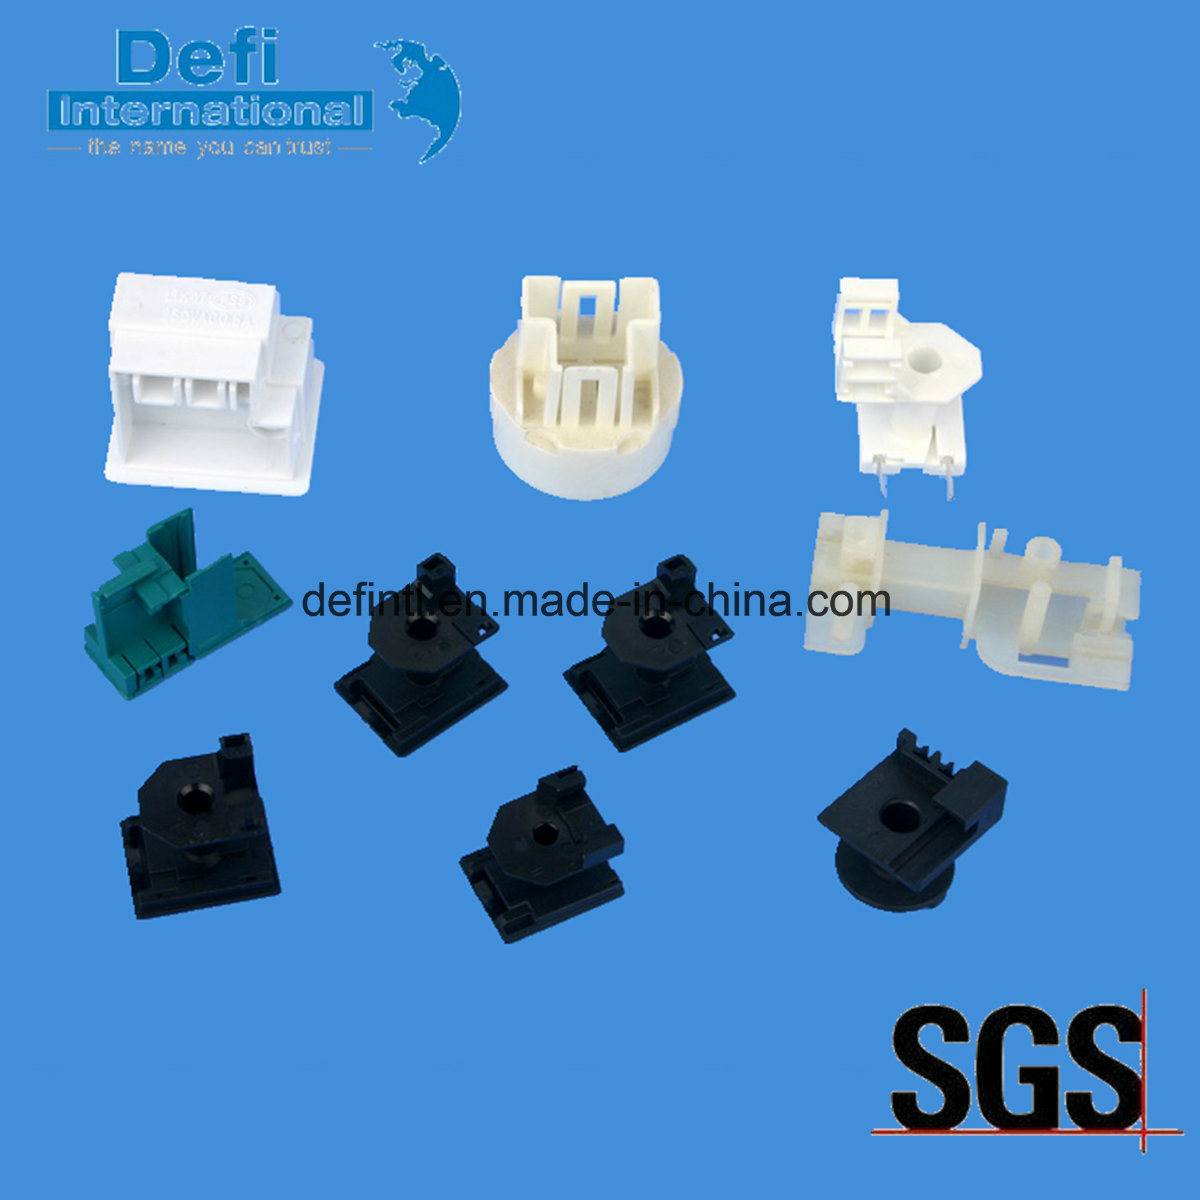 China Plastic Solid State Relay Bobbin for Automotive and Electric